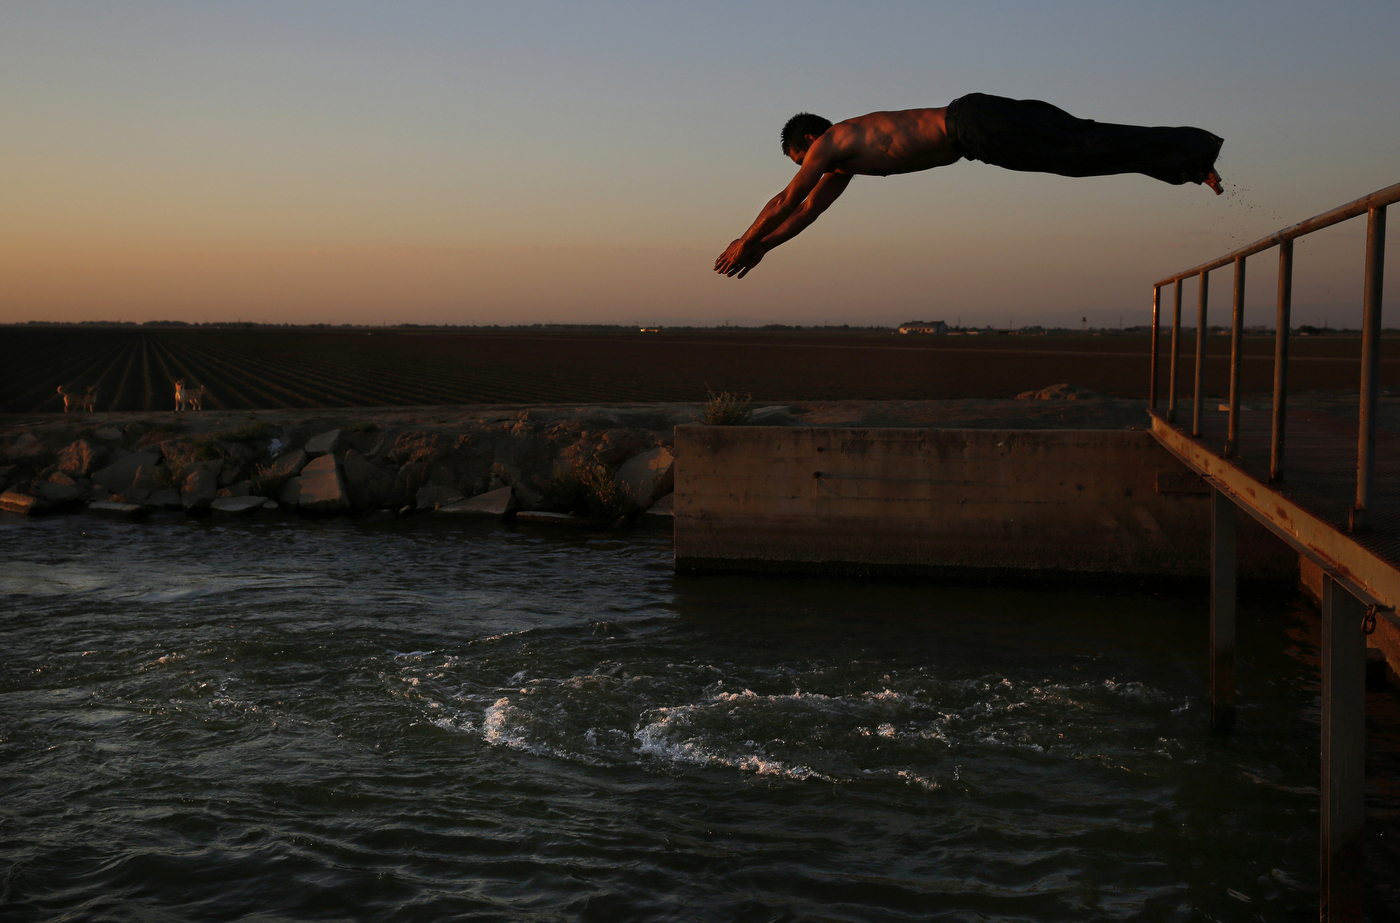 Martín Hernandez Mena, 50, dives into an irrigation canal in June near the shantytown he lives in located in a dried up canal bed on Westlands Water District land outside of Mendota, Calif.